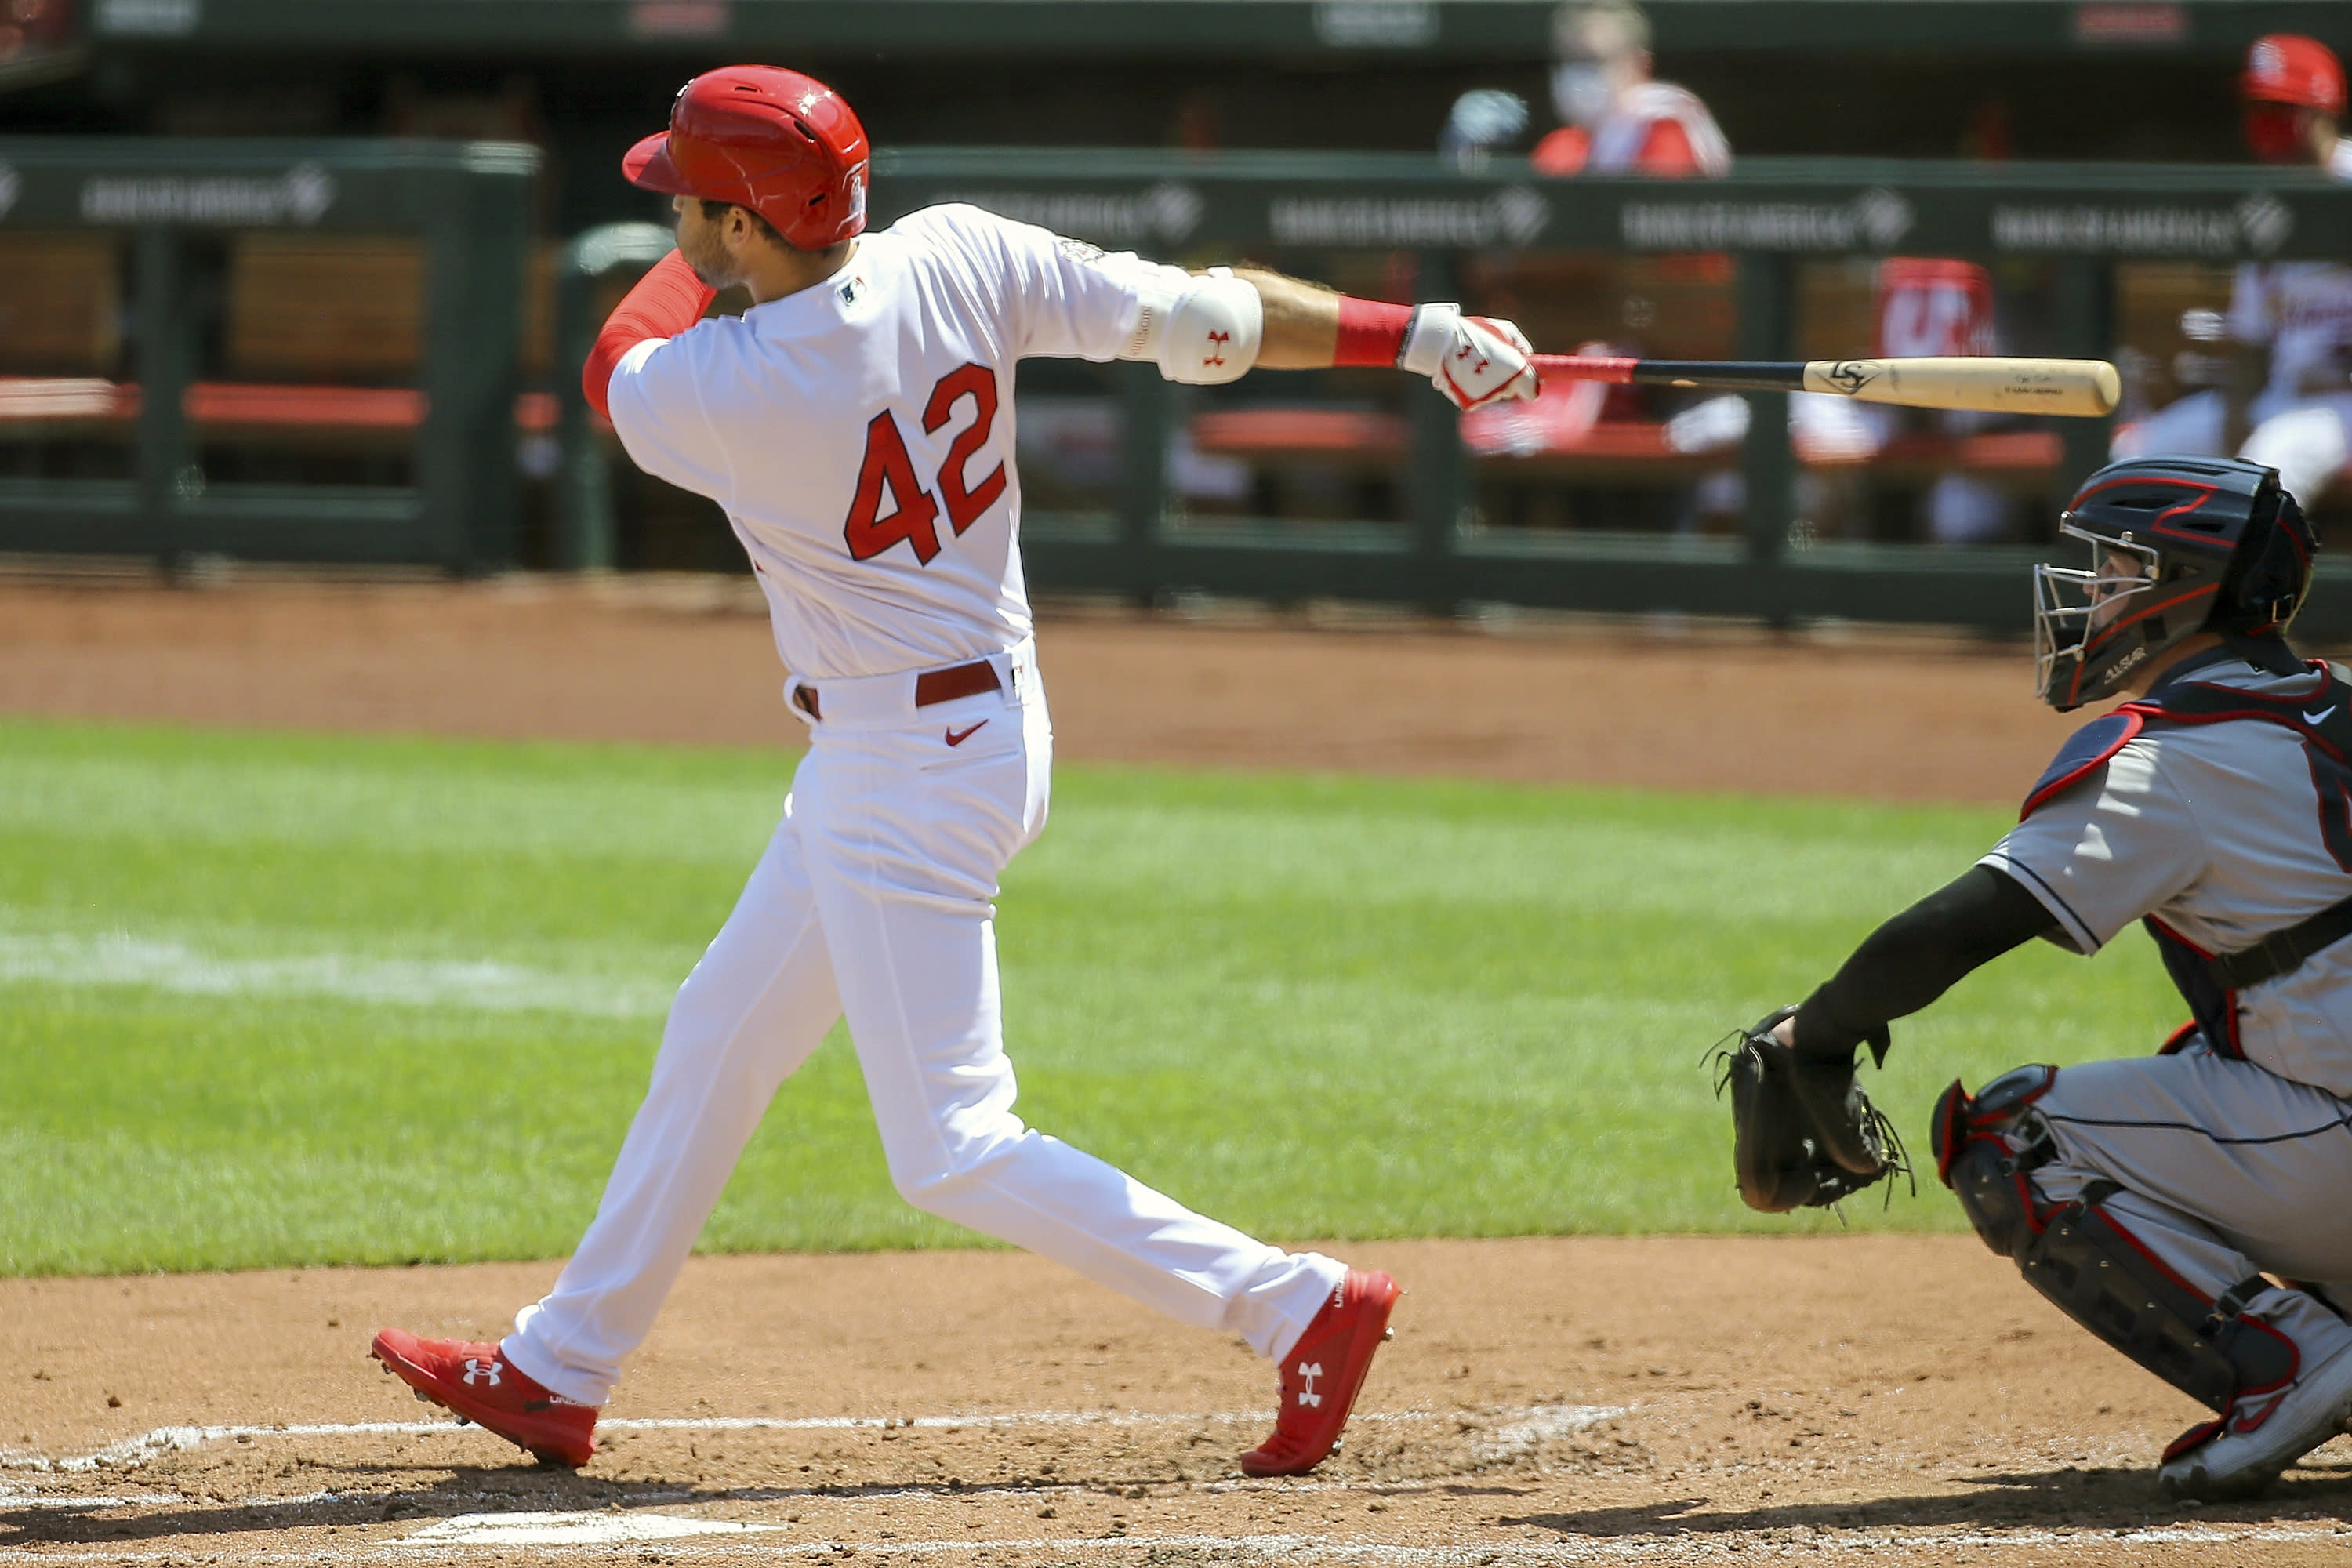 St. Louis Cardinals' Dylan Carlson hits a two-run single during the second inning of a baseball game against the Cleveland Indians Sunday, Aug. 30, 2020, in St. Louis. (AP Photo/Scott Kane)